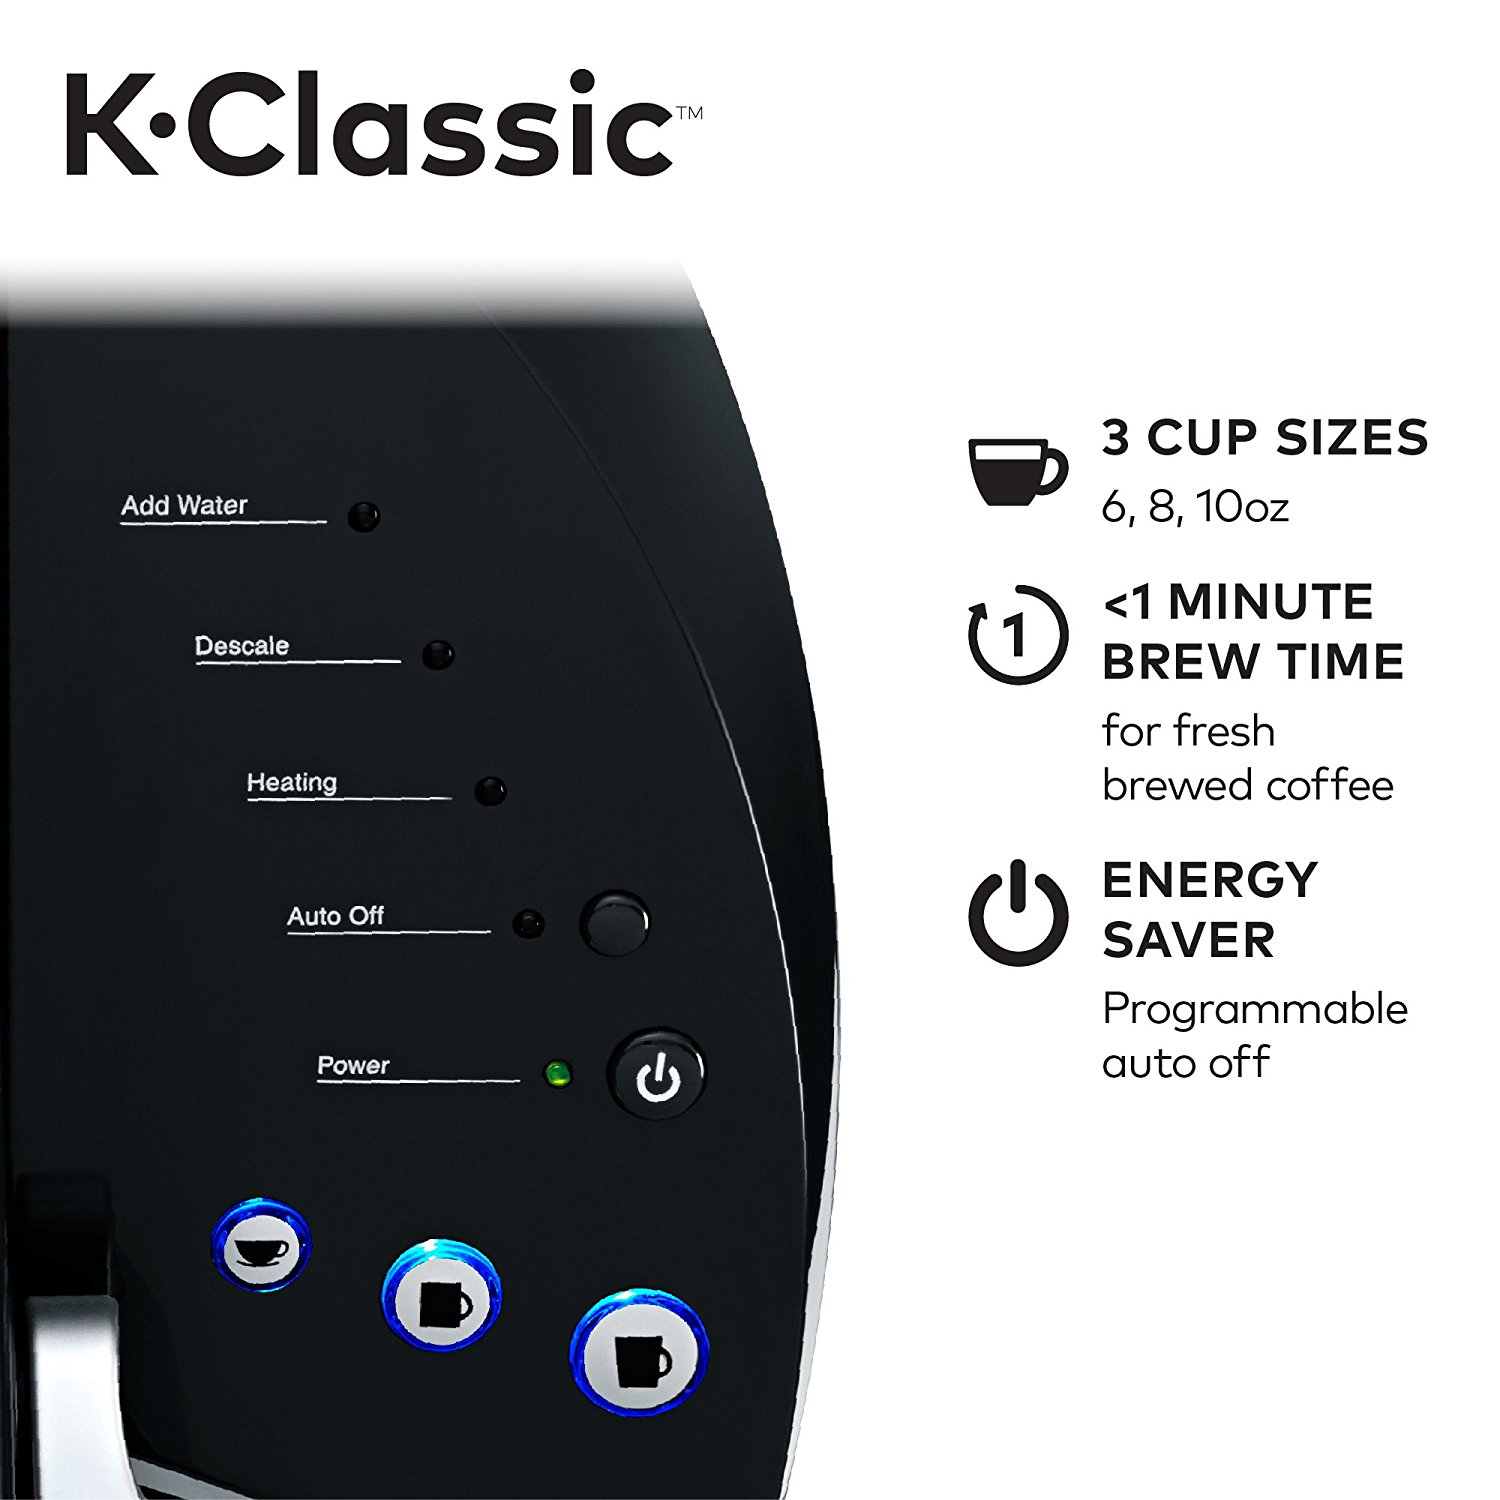 the K15 coffee maker